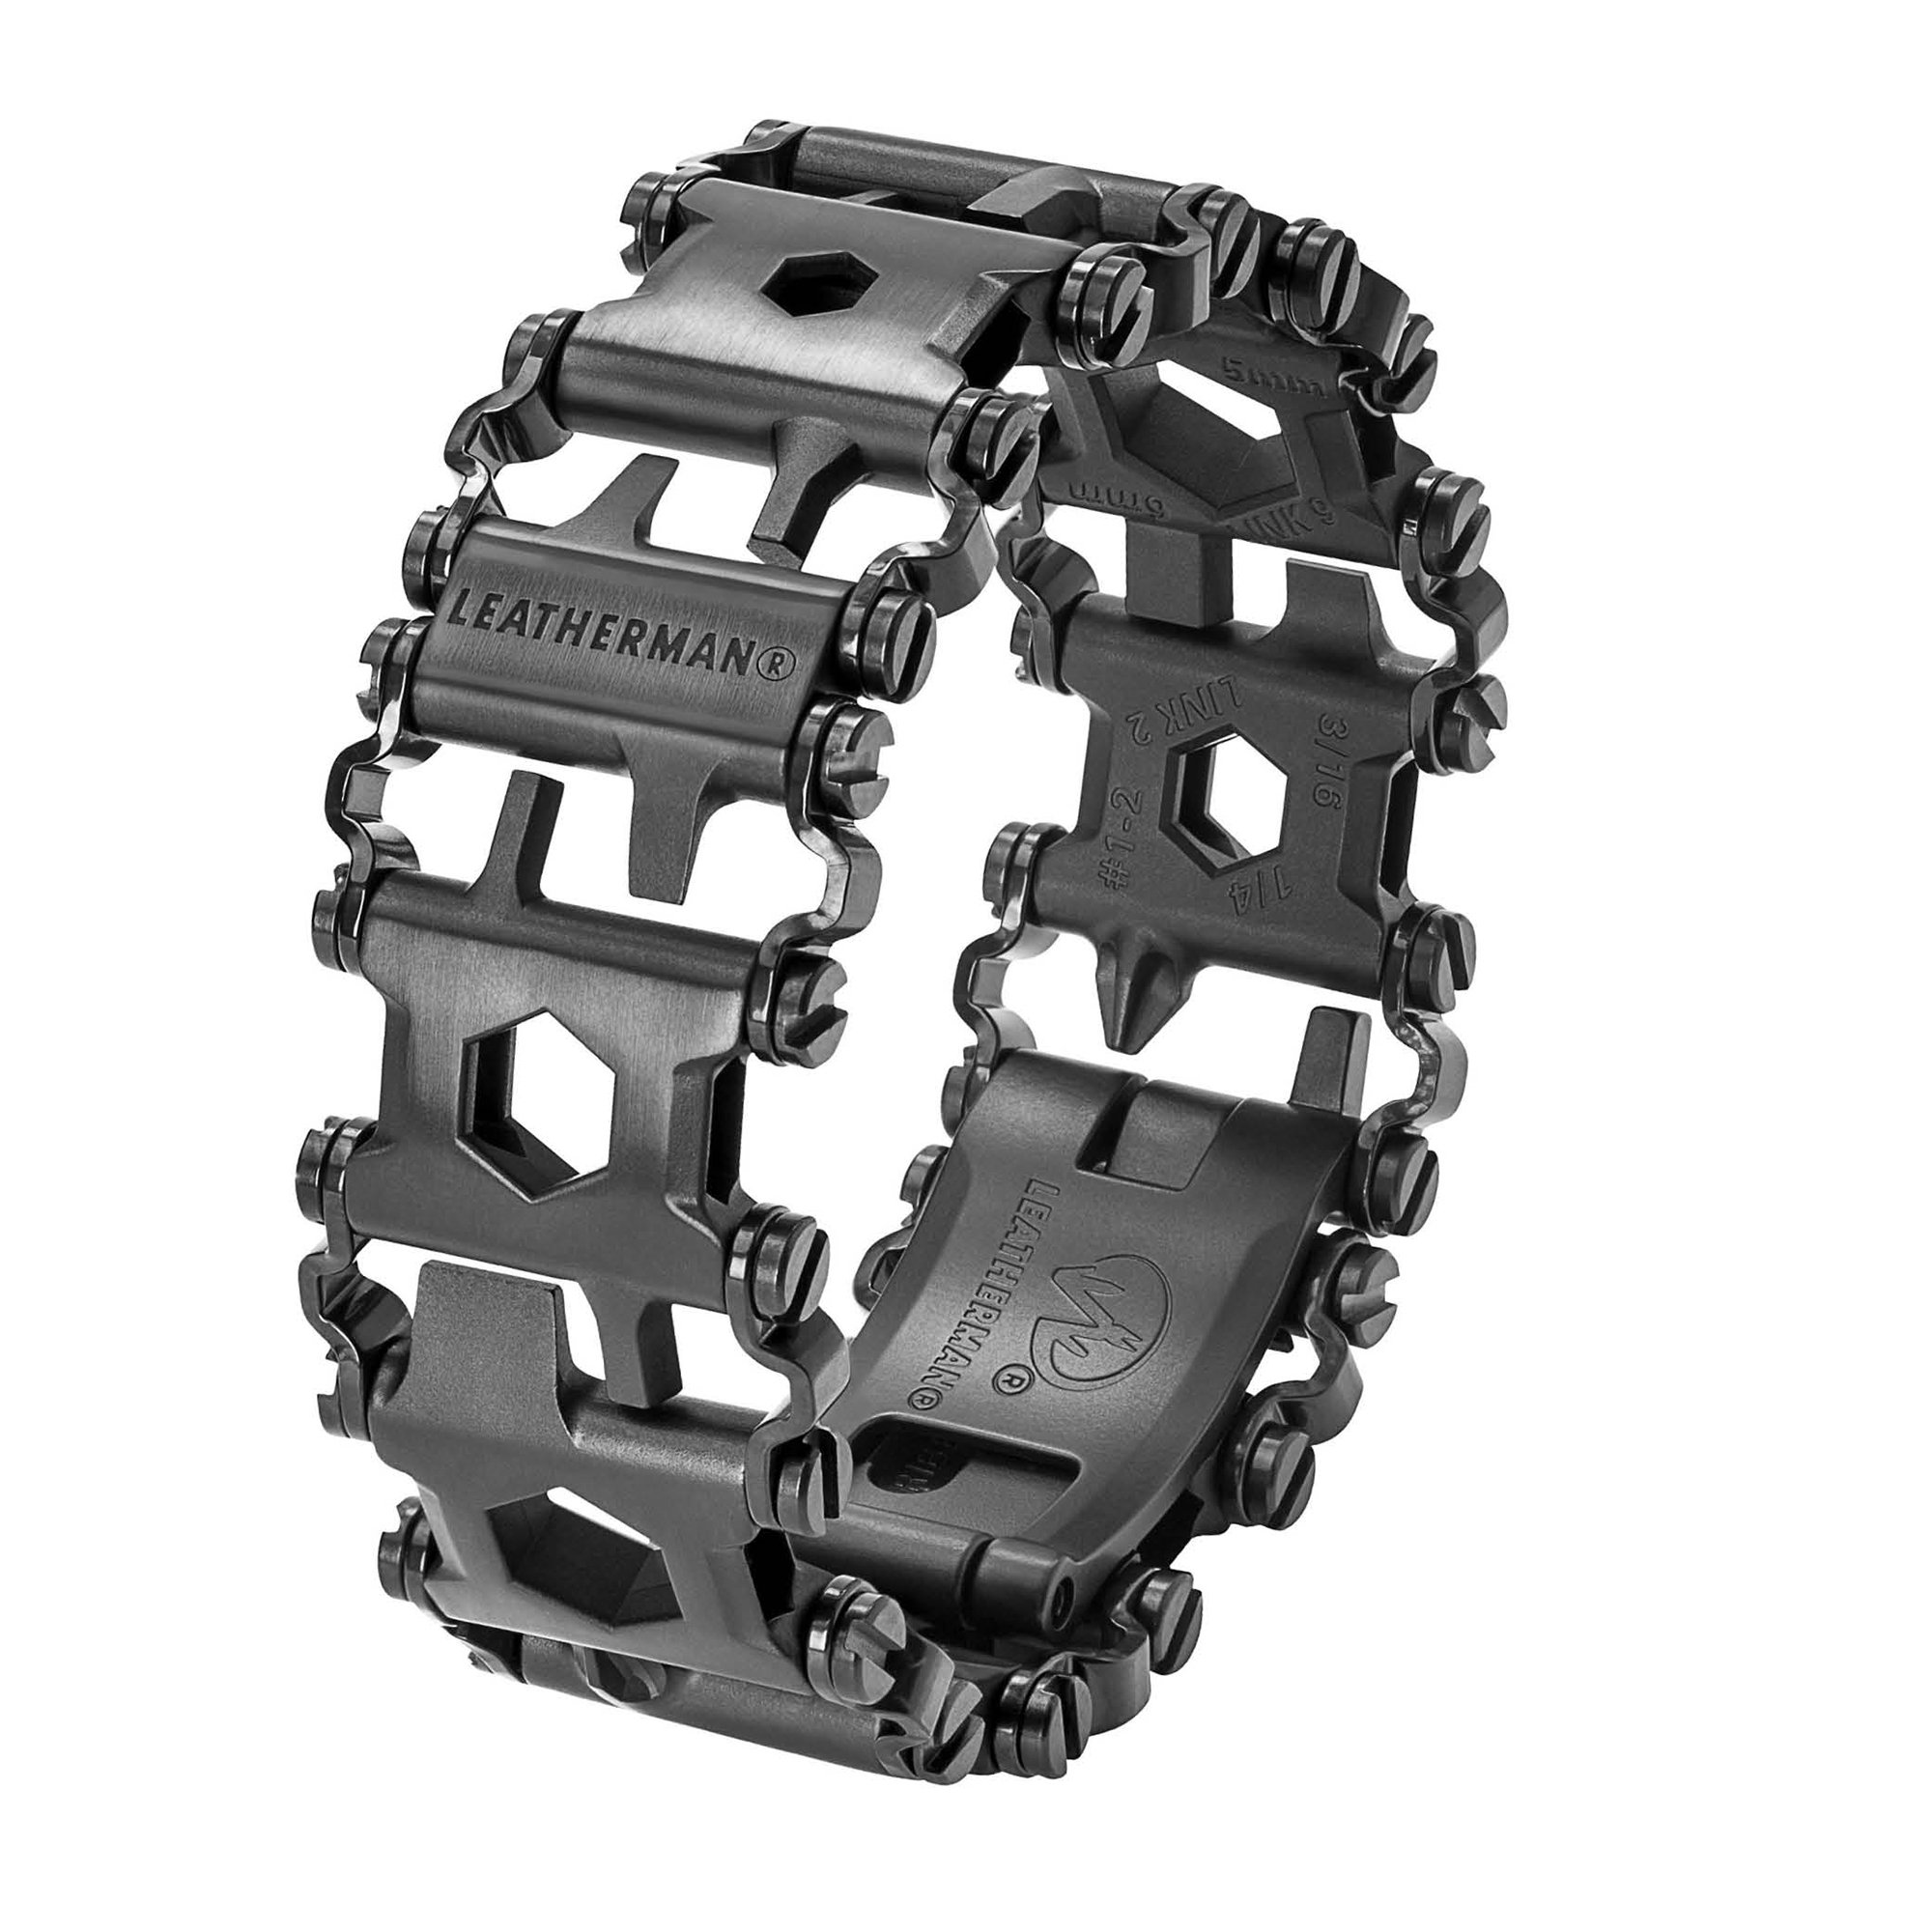 LEATHERMAN - Tread Bracelet, The Original Travel Friendly Wearable Multitool, Black (FFP)